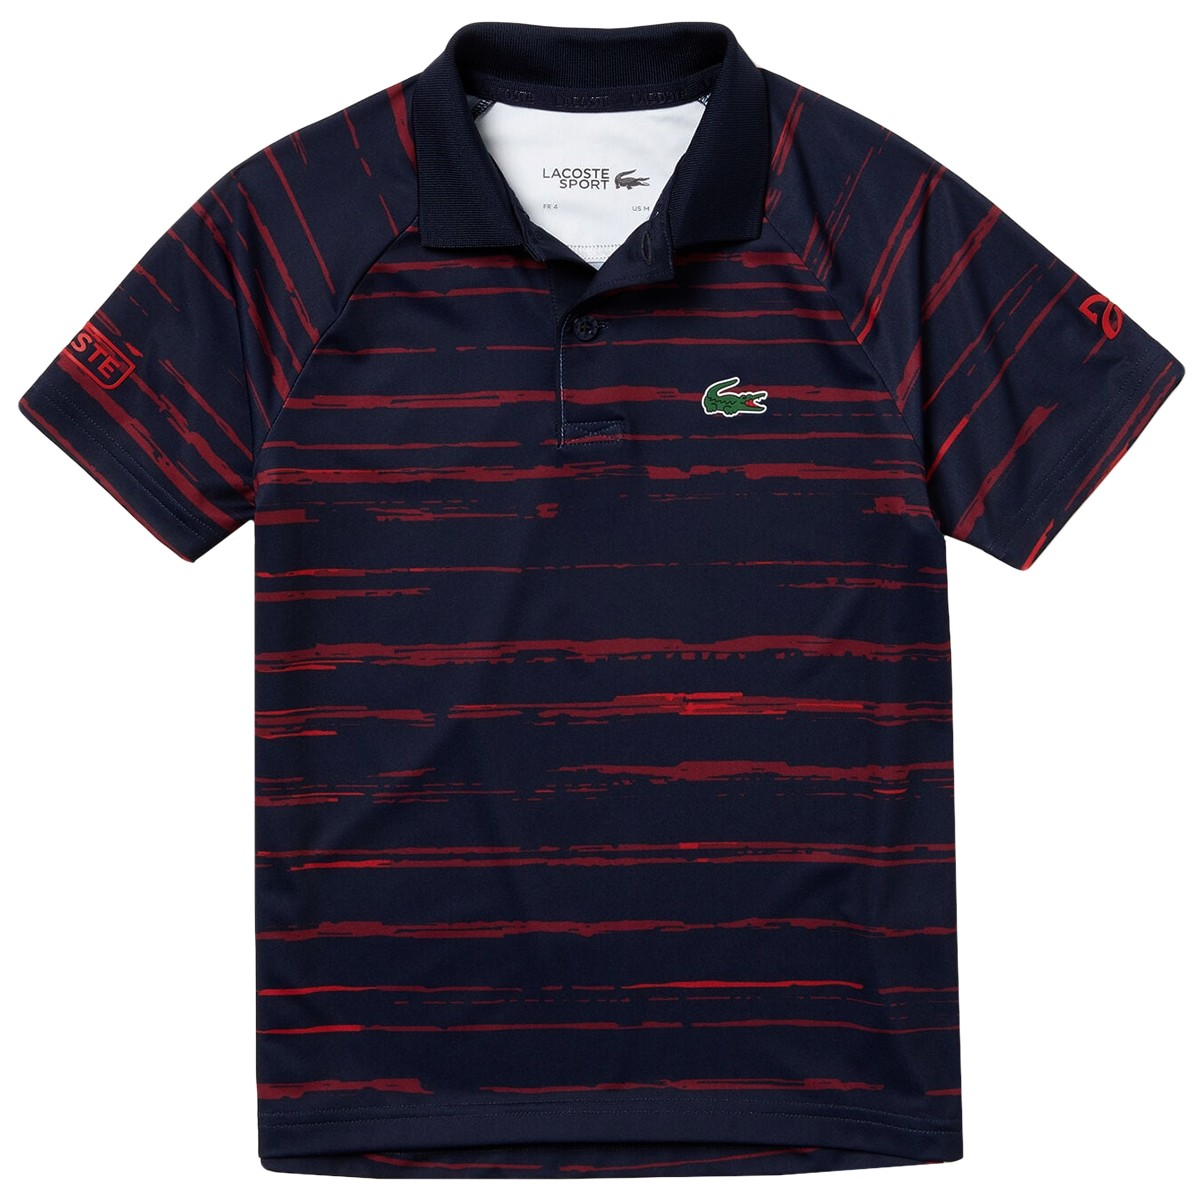 POLO LACOSTE JUNIOR TENNIS DJOKOVIC